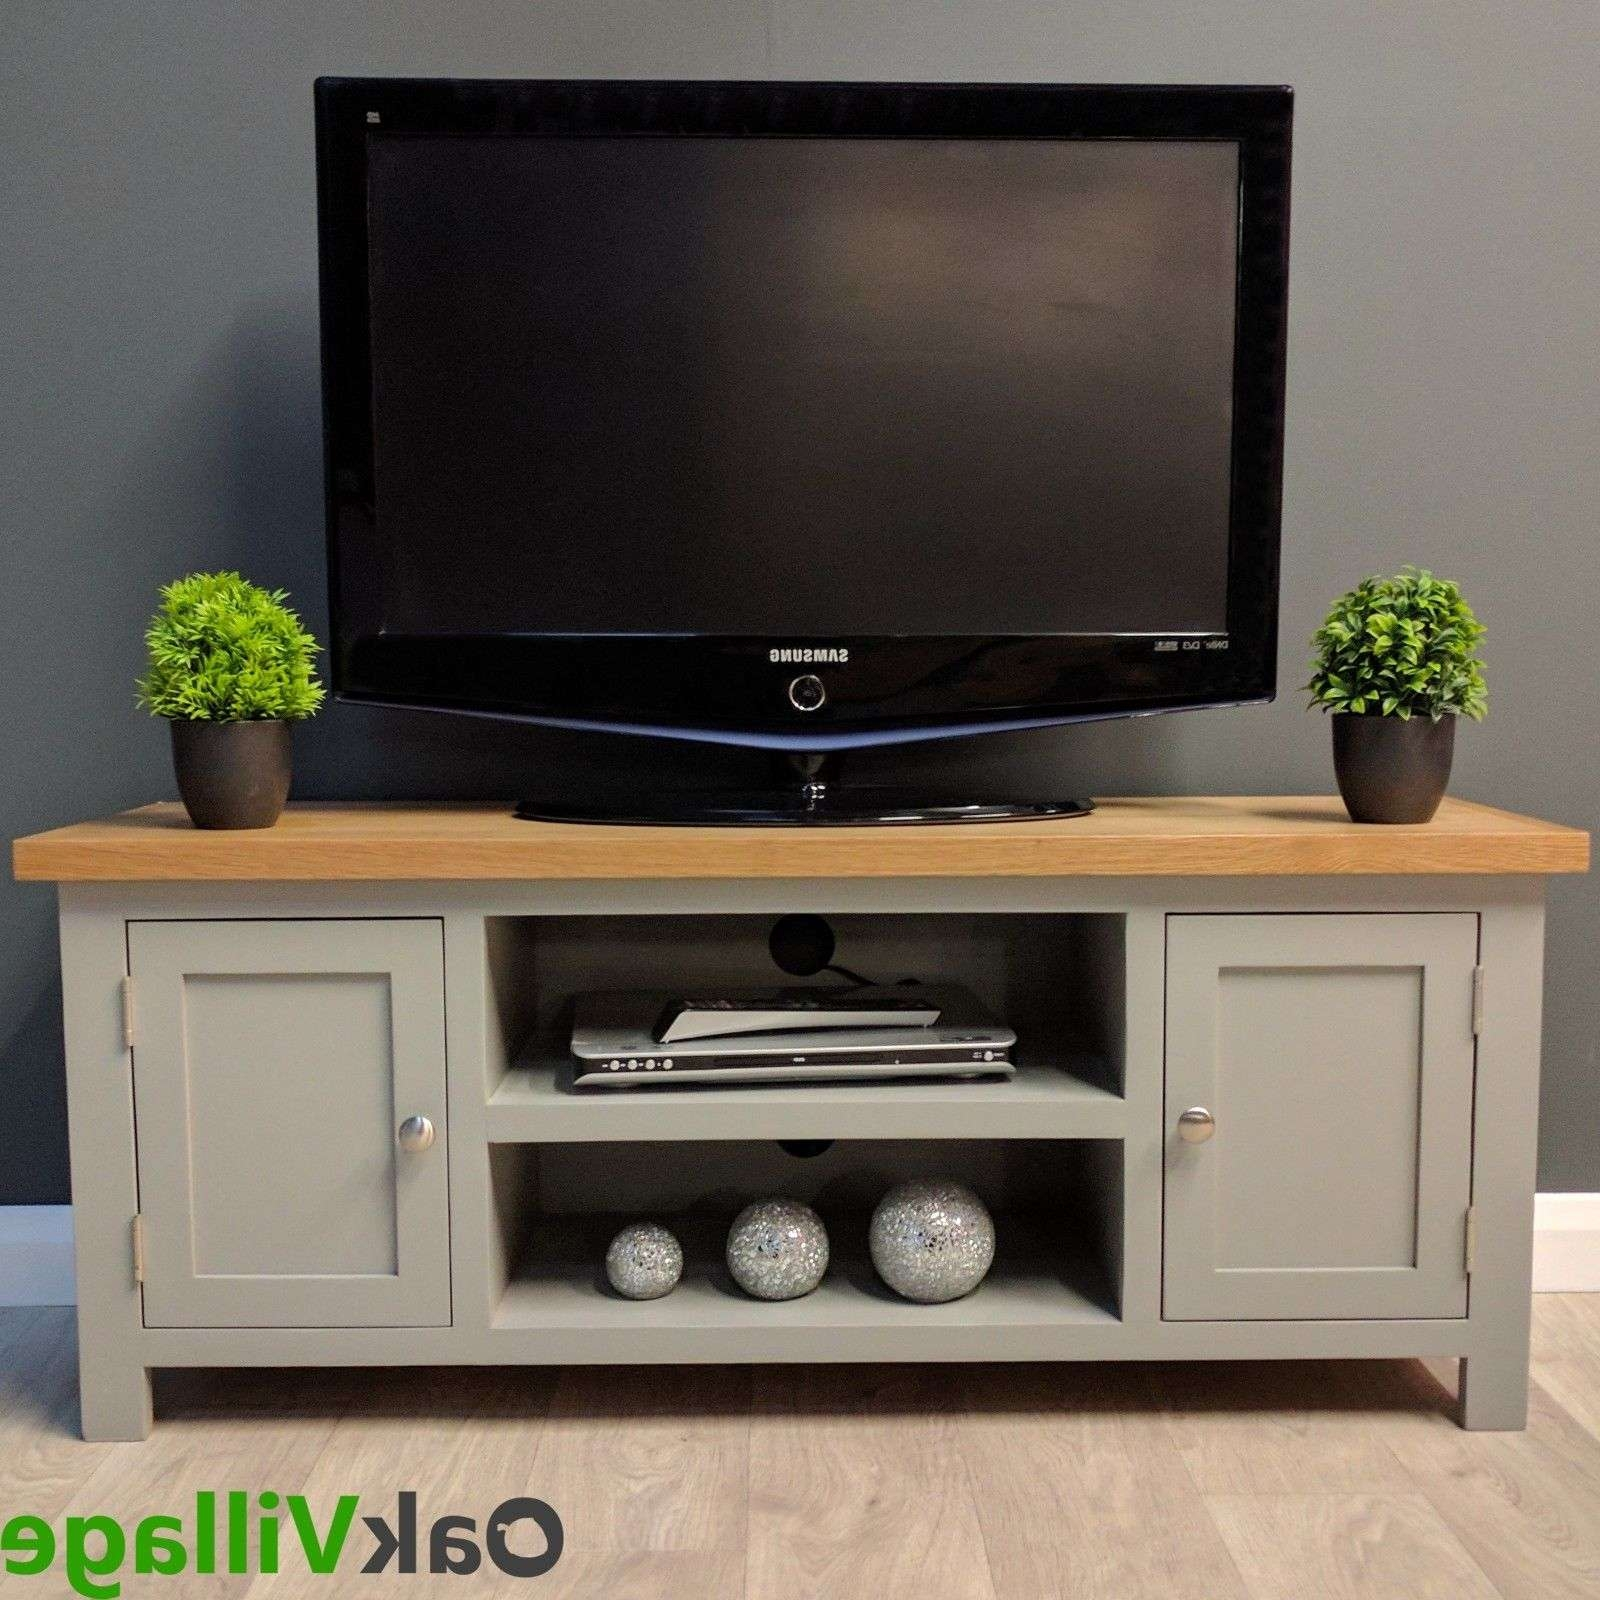 Oak Tv Stands | Ebay With Regard To Tv Stands In Oak (View 14 of 15)